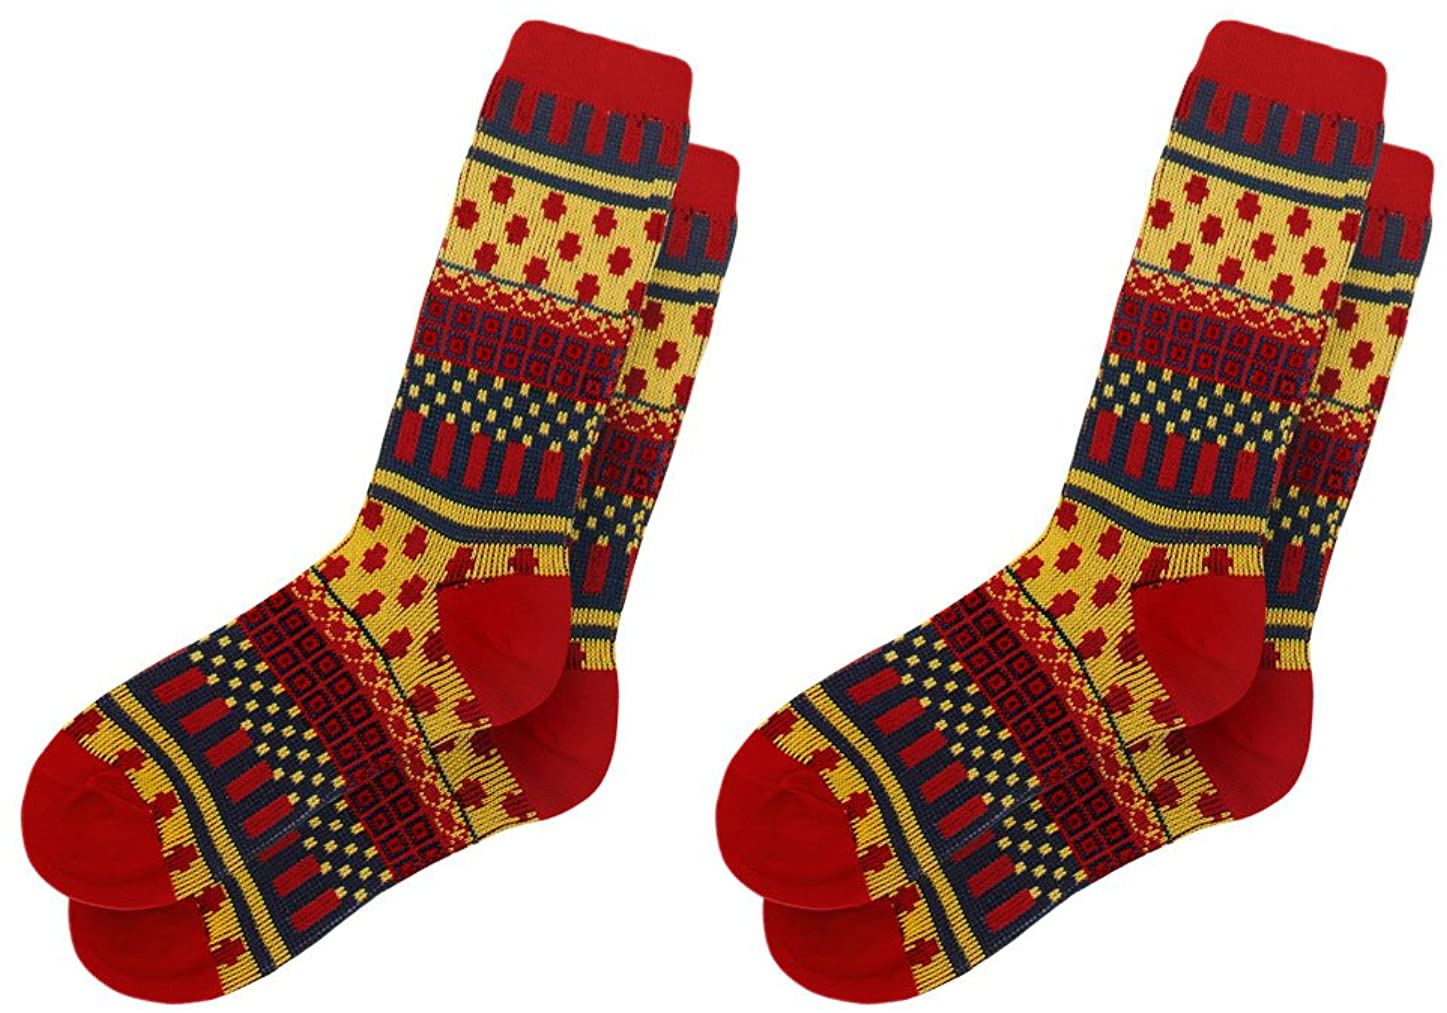 uxcell Women Novelty Prints Elastic Cuffs Ankle High Socks 2 Pairs